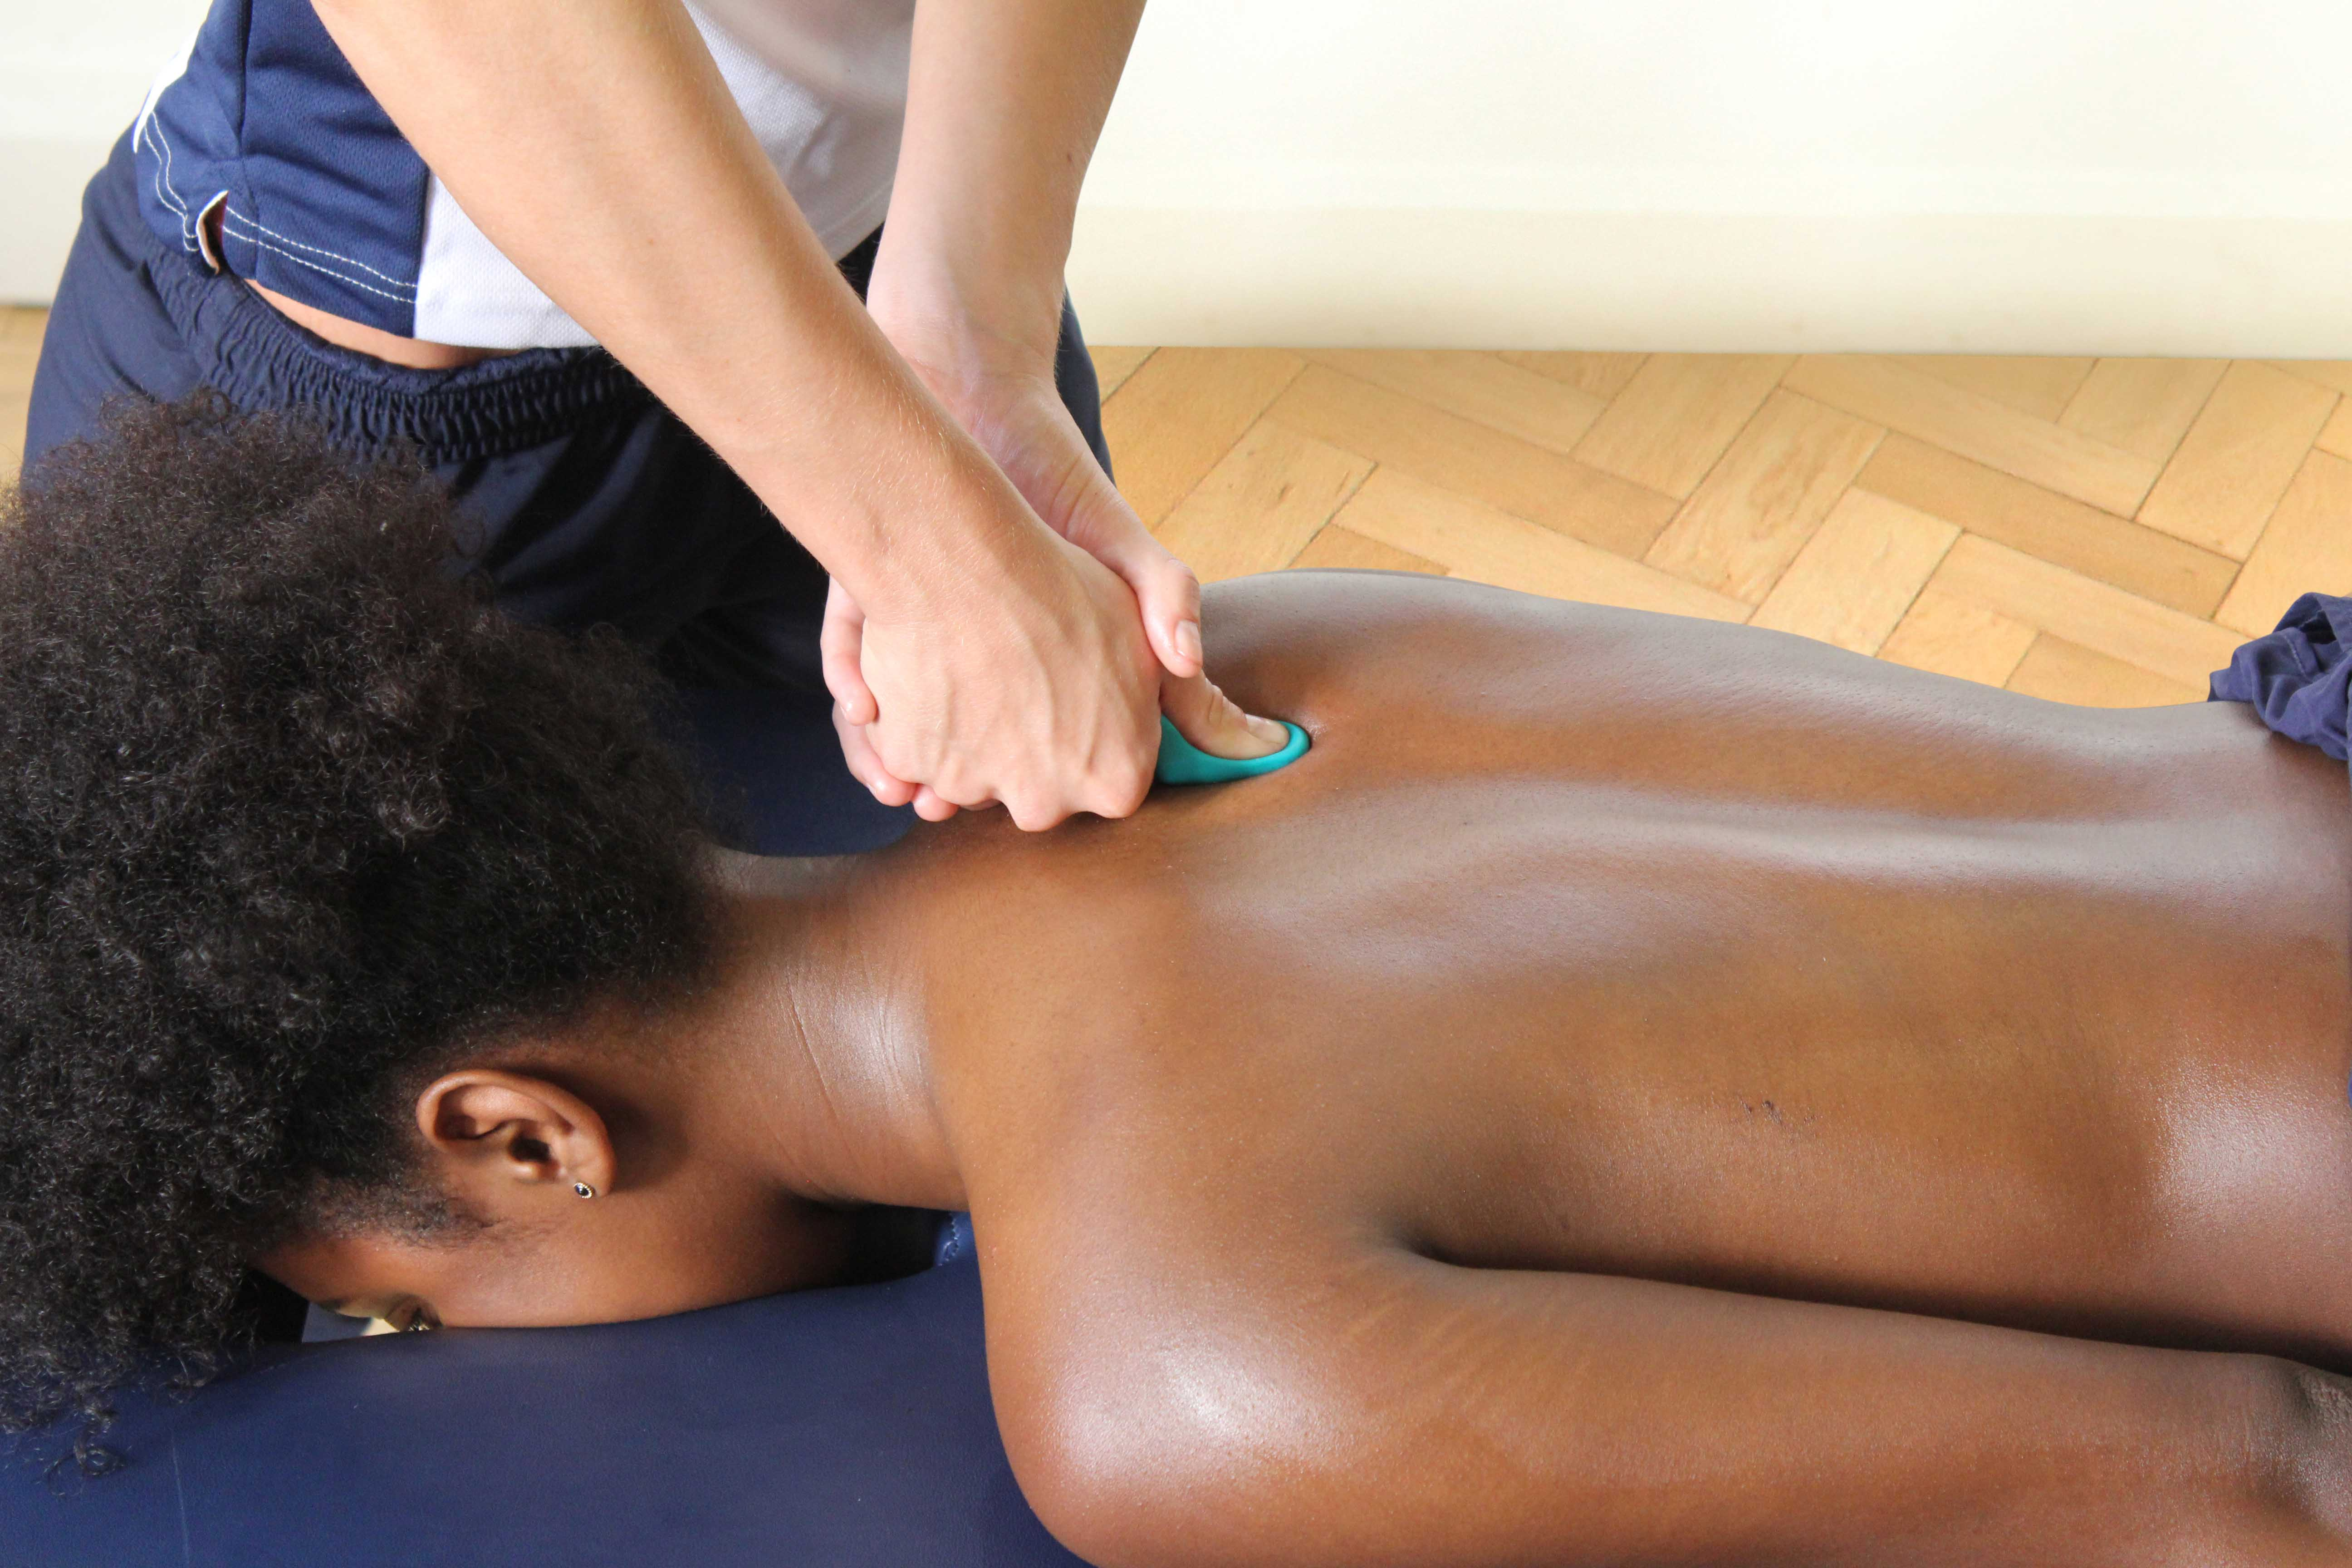 Trigger point massage of the muscles in the upper back using a therapy aid